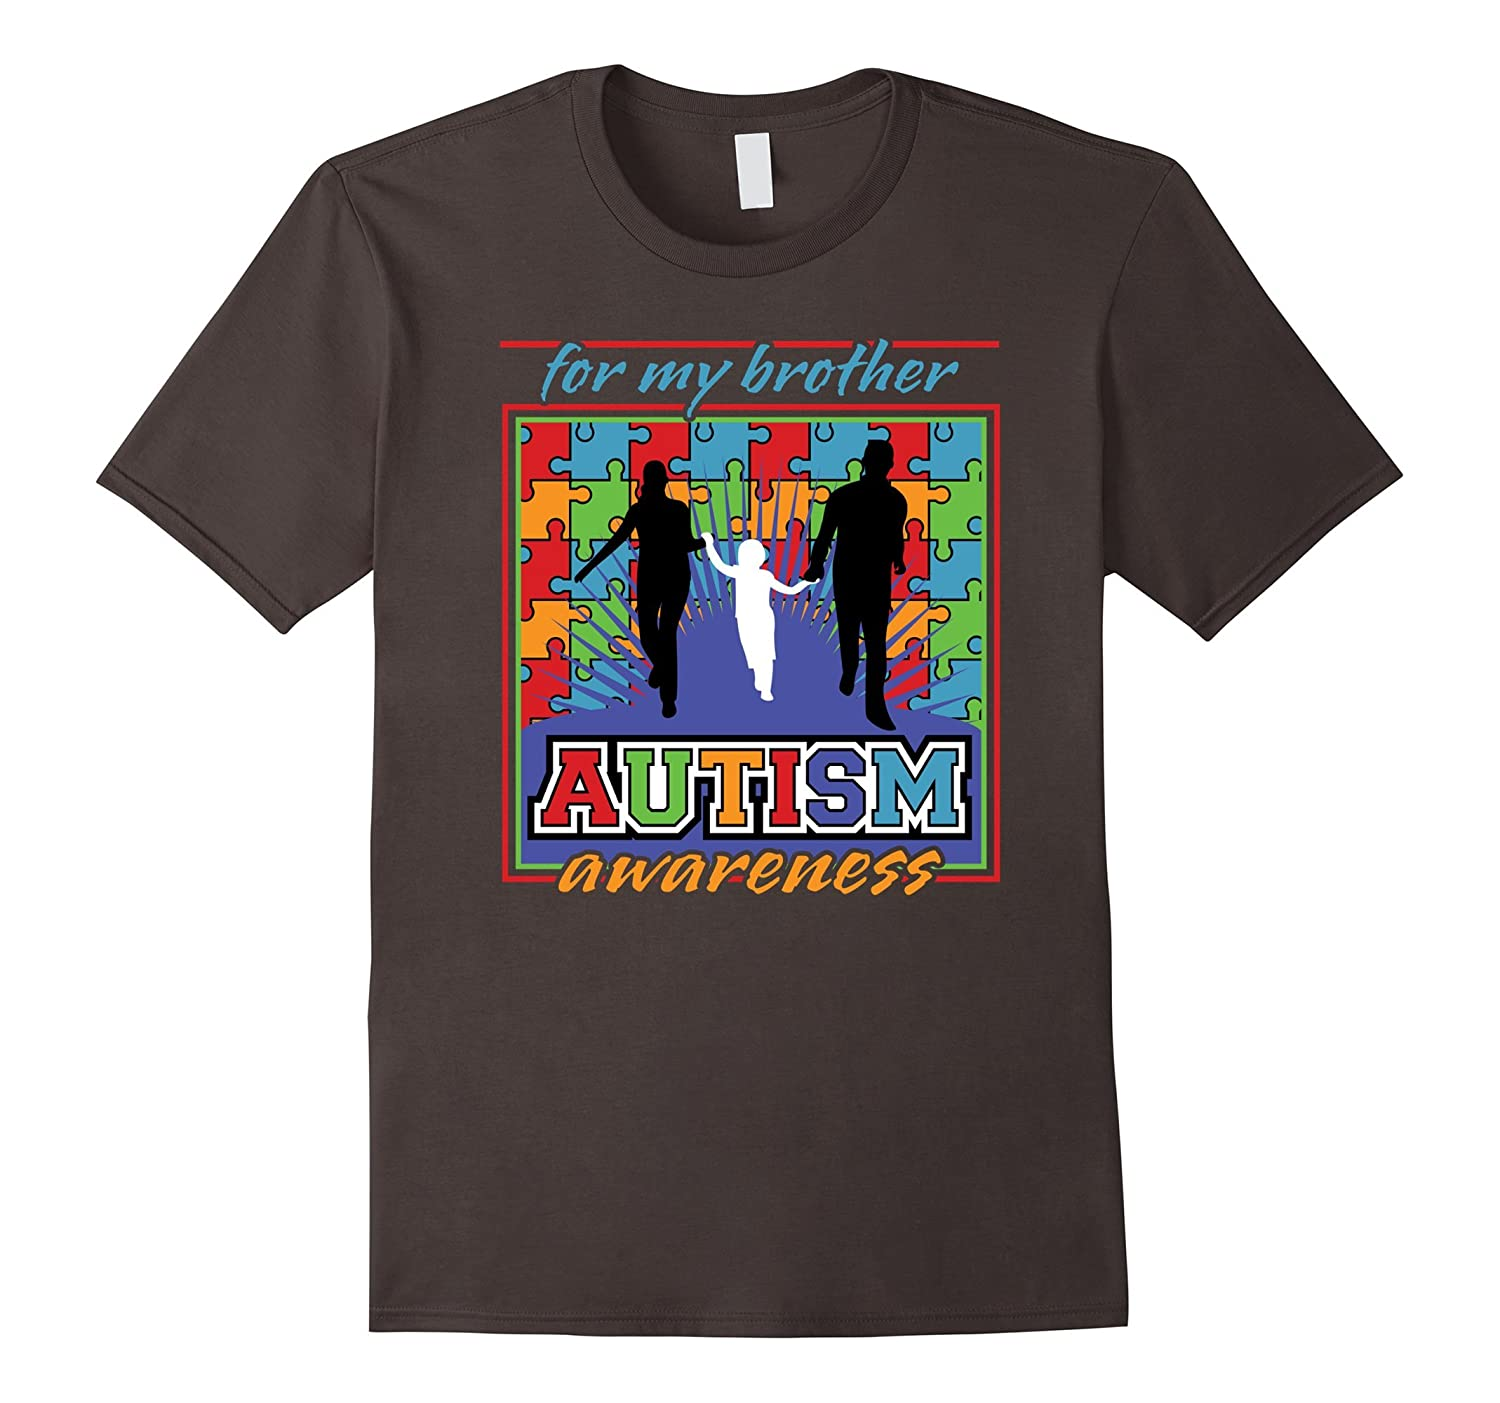 Autism Awareness for my Brother T-shirt